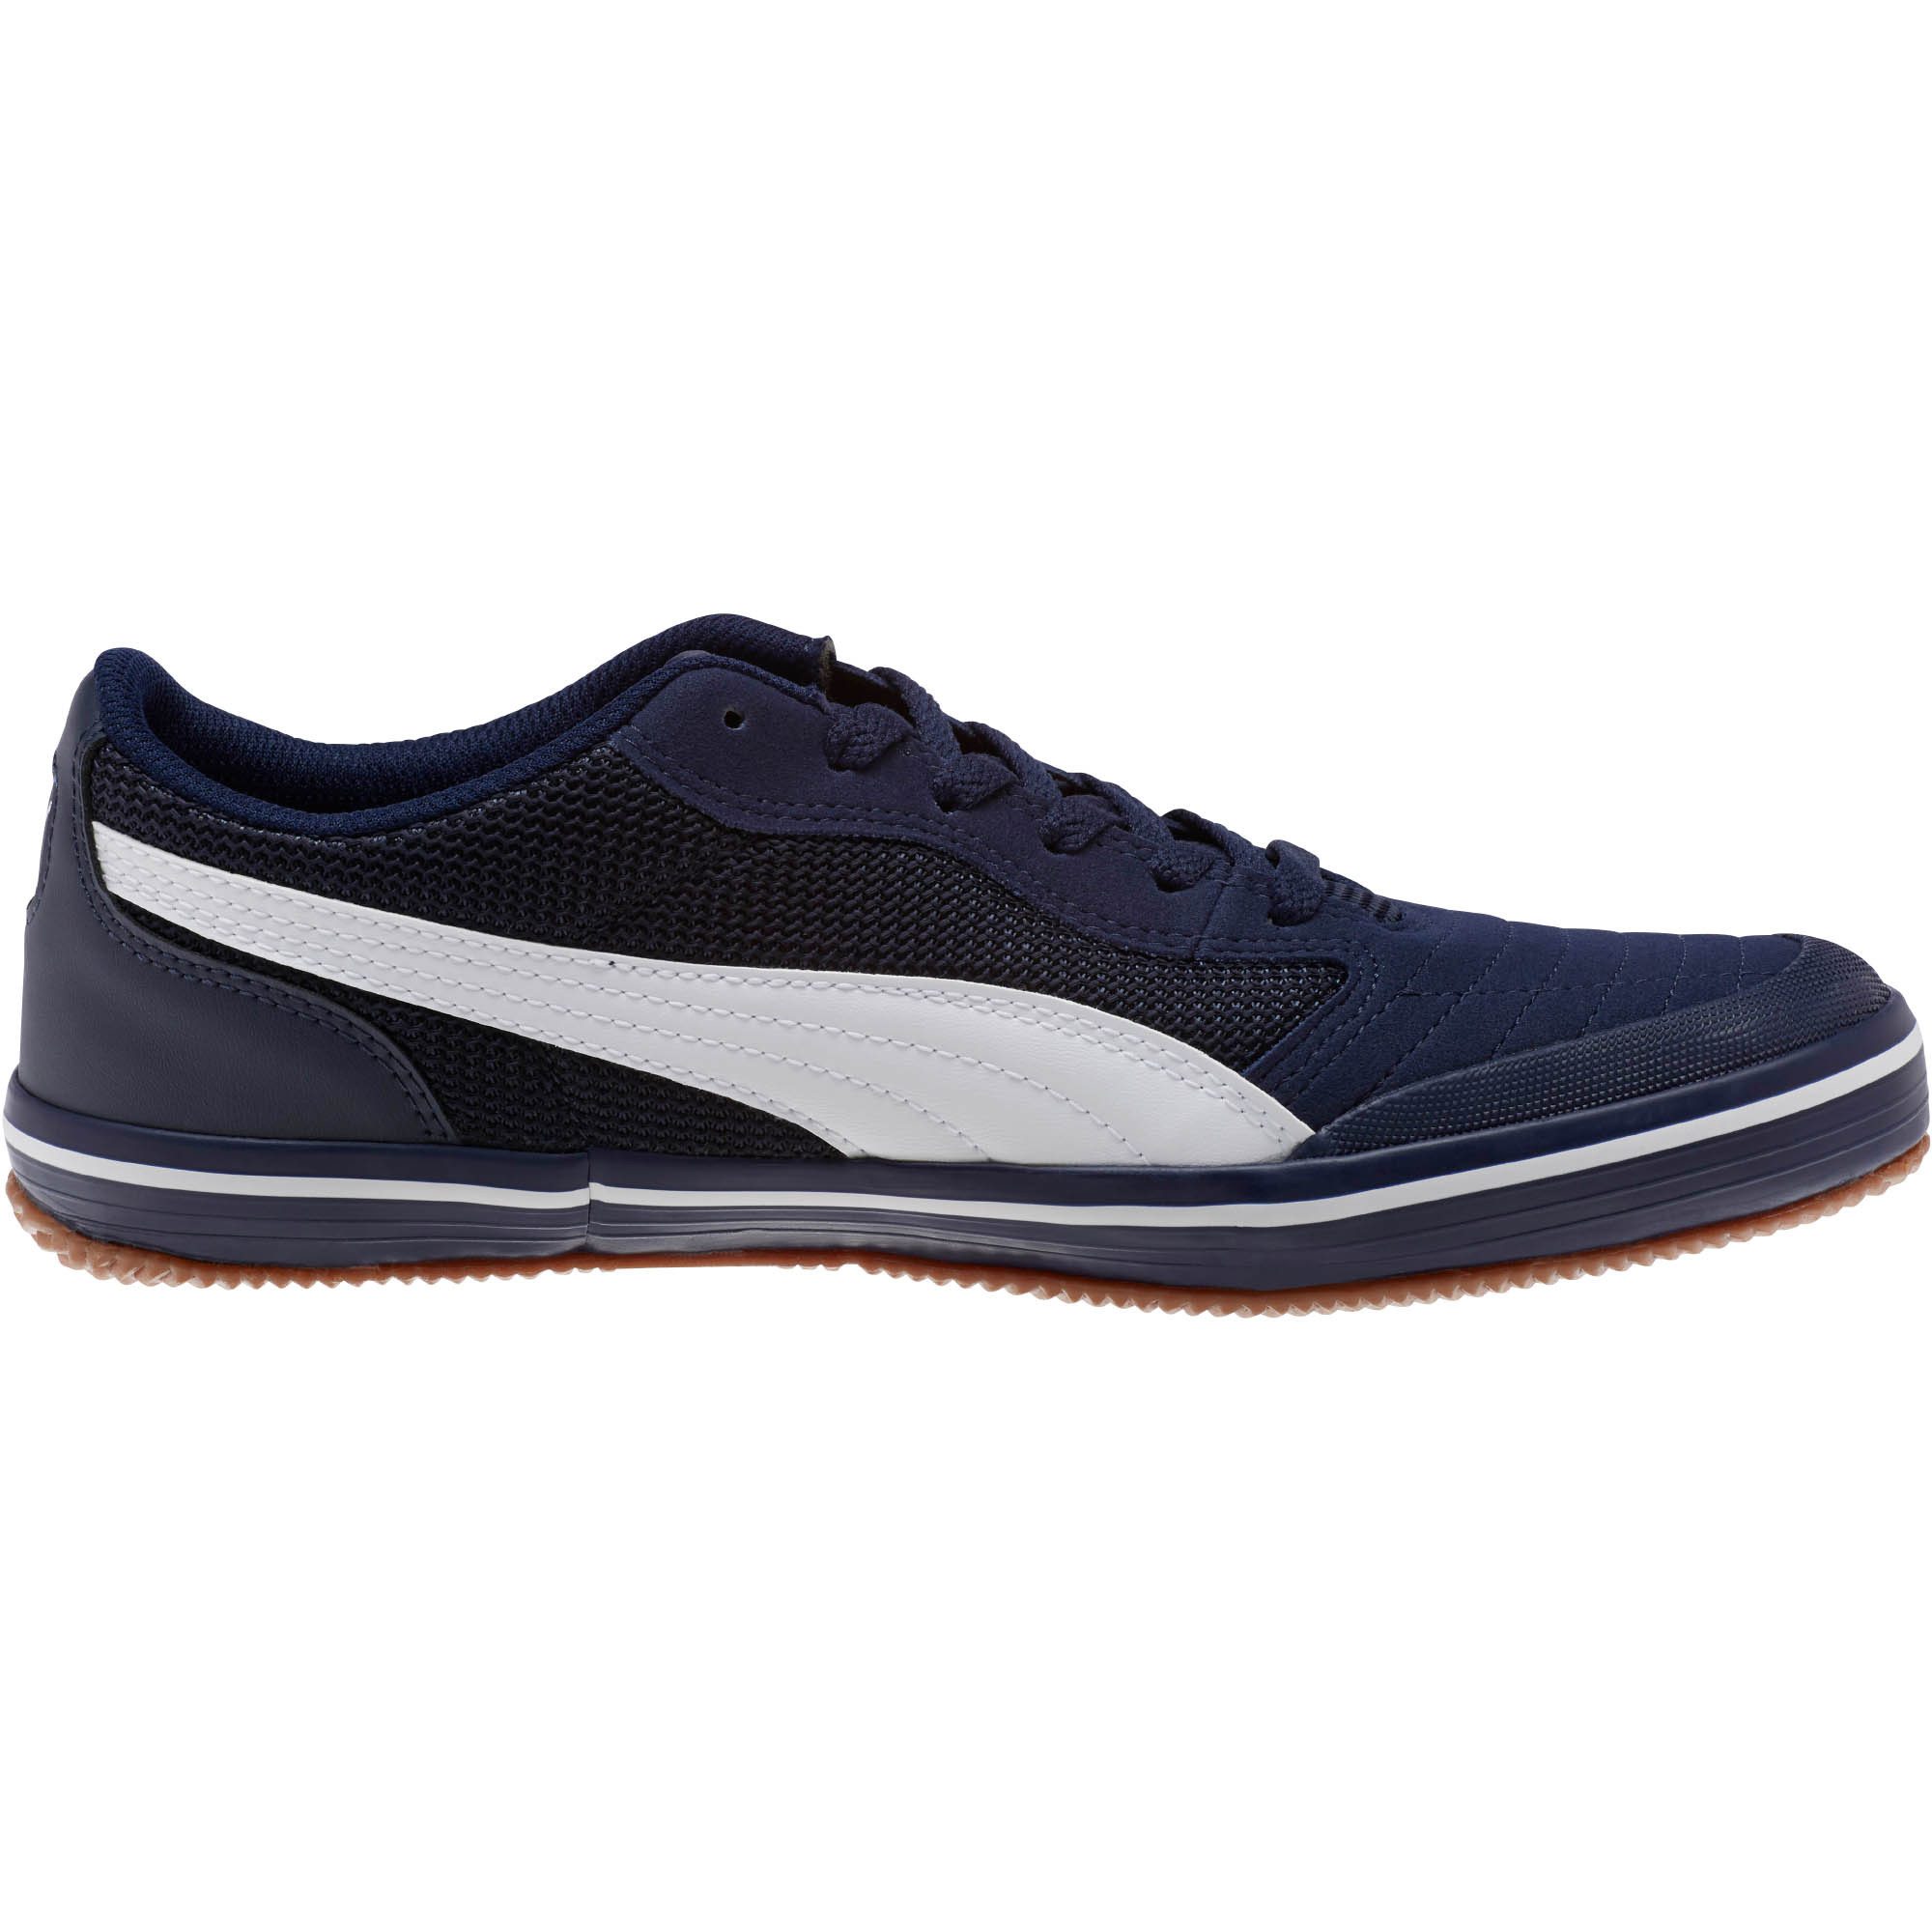 PUMA-Men-039-s-Astro-Sala-Sneakers thumbnail 9